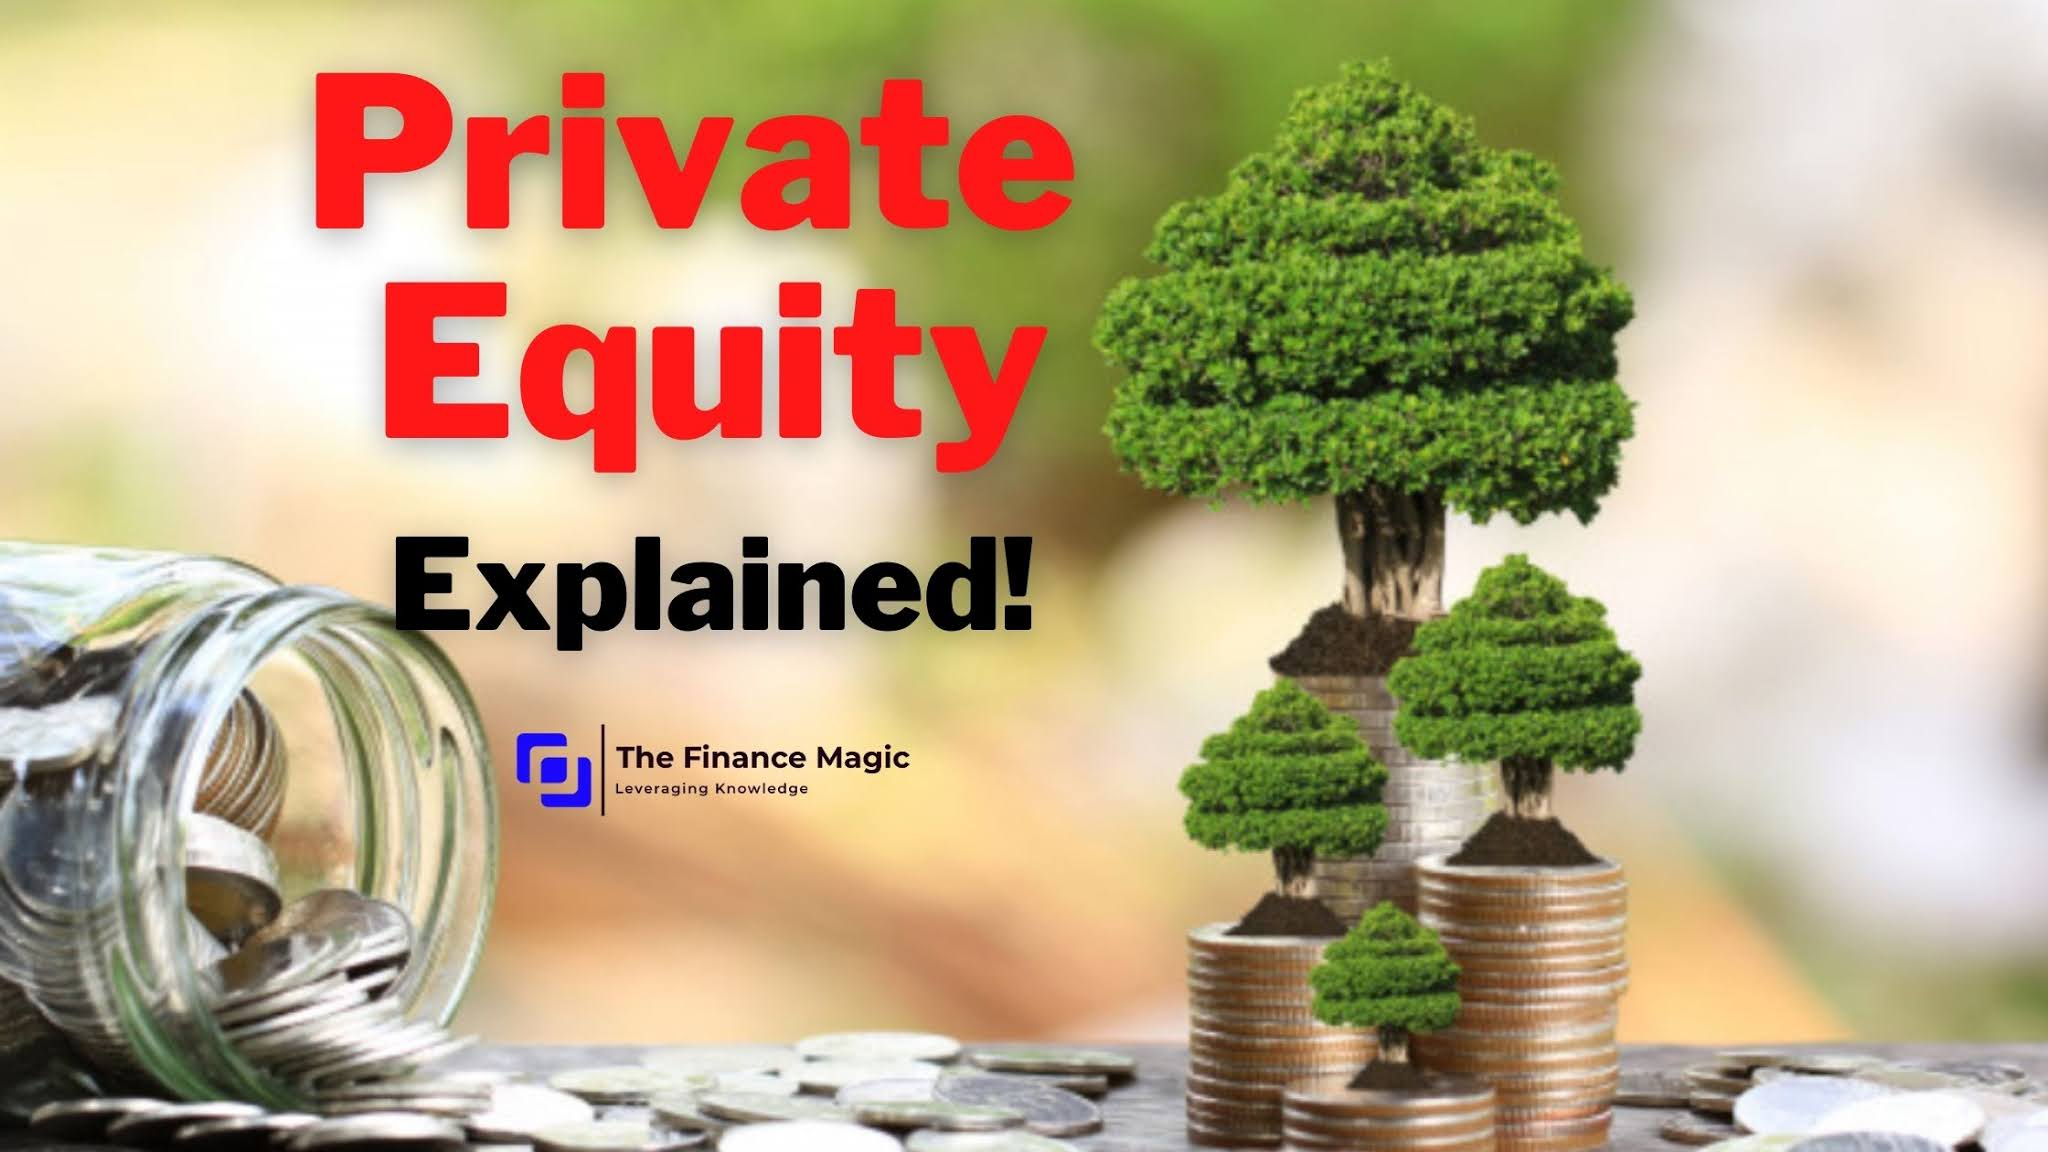 Private Equity - Explained